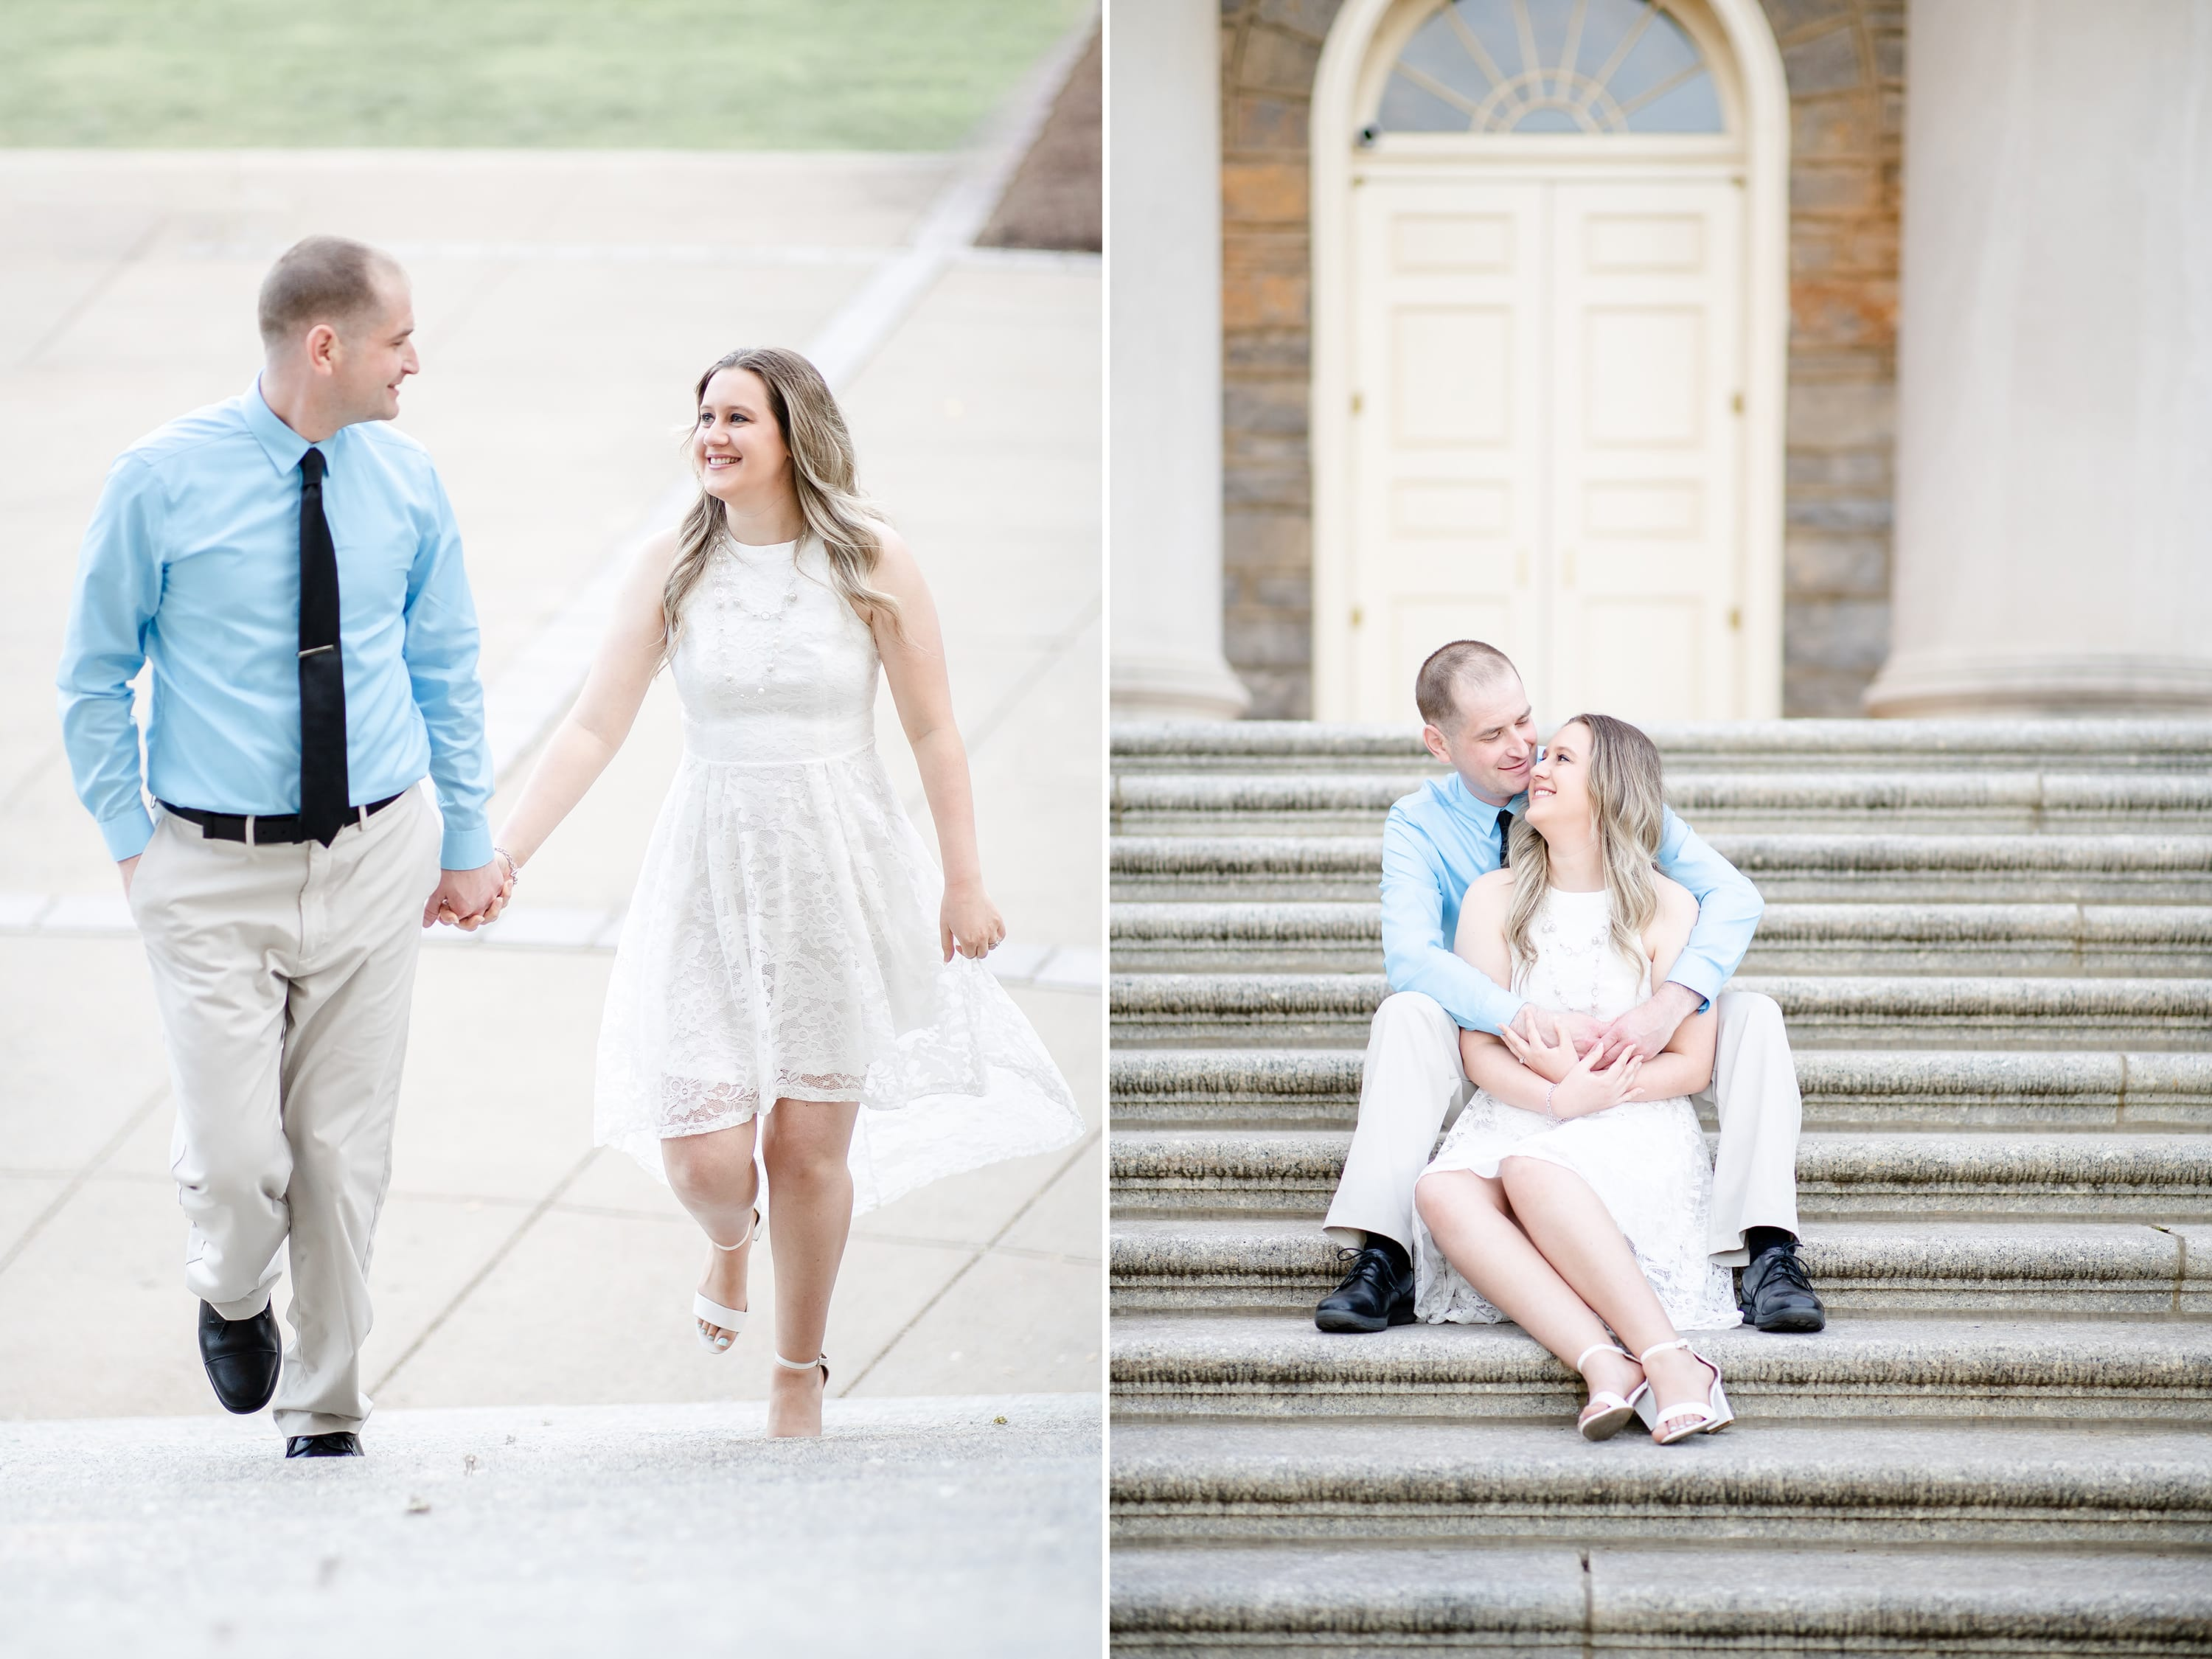 Engagement photo at Penn State Old Main steps